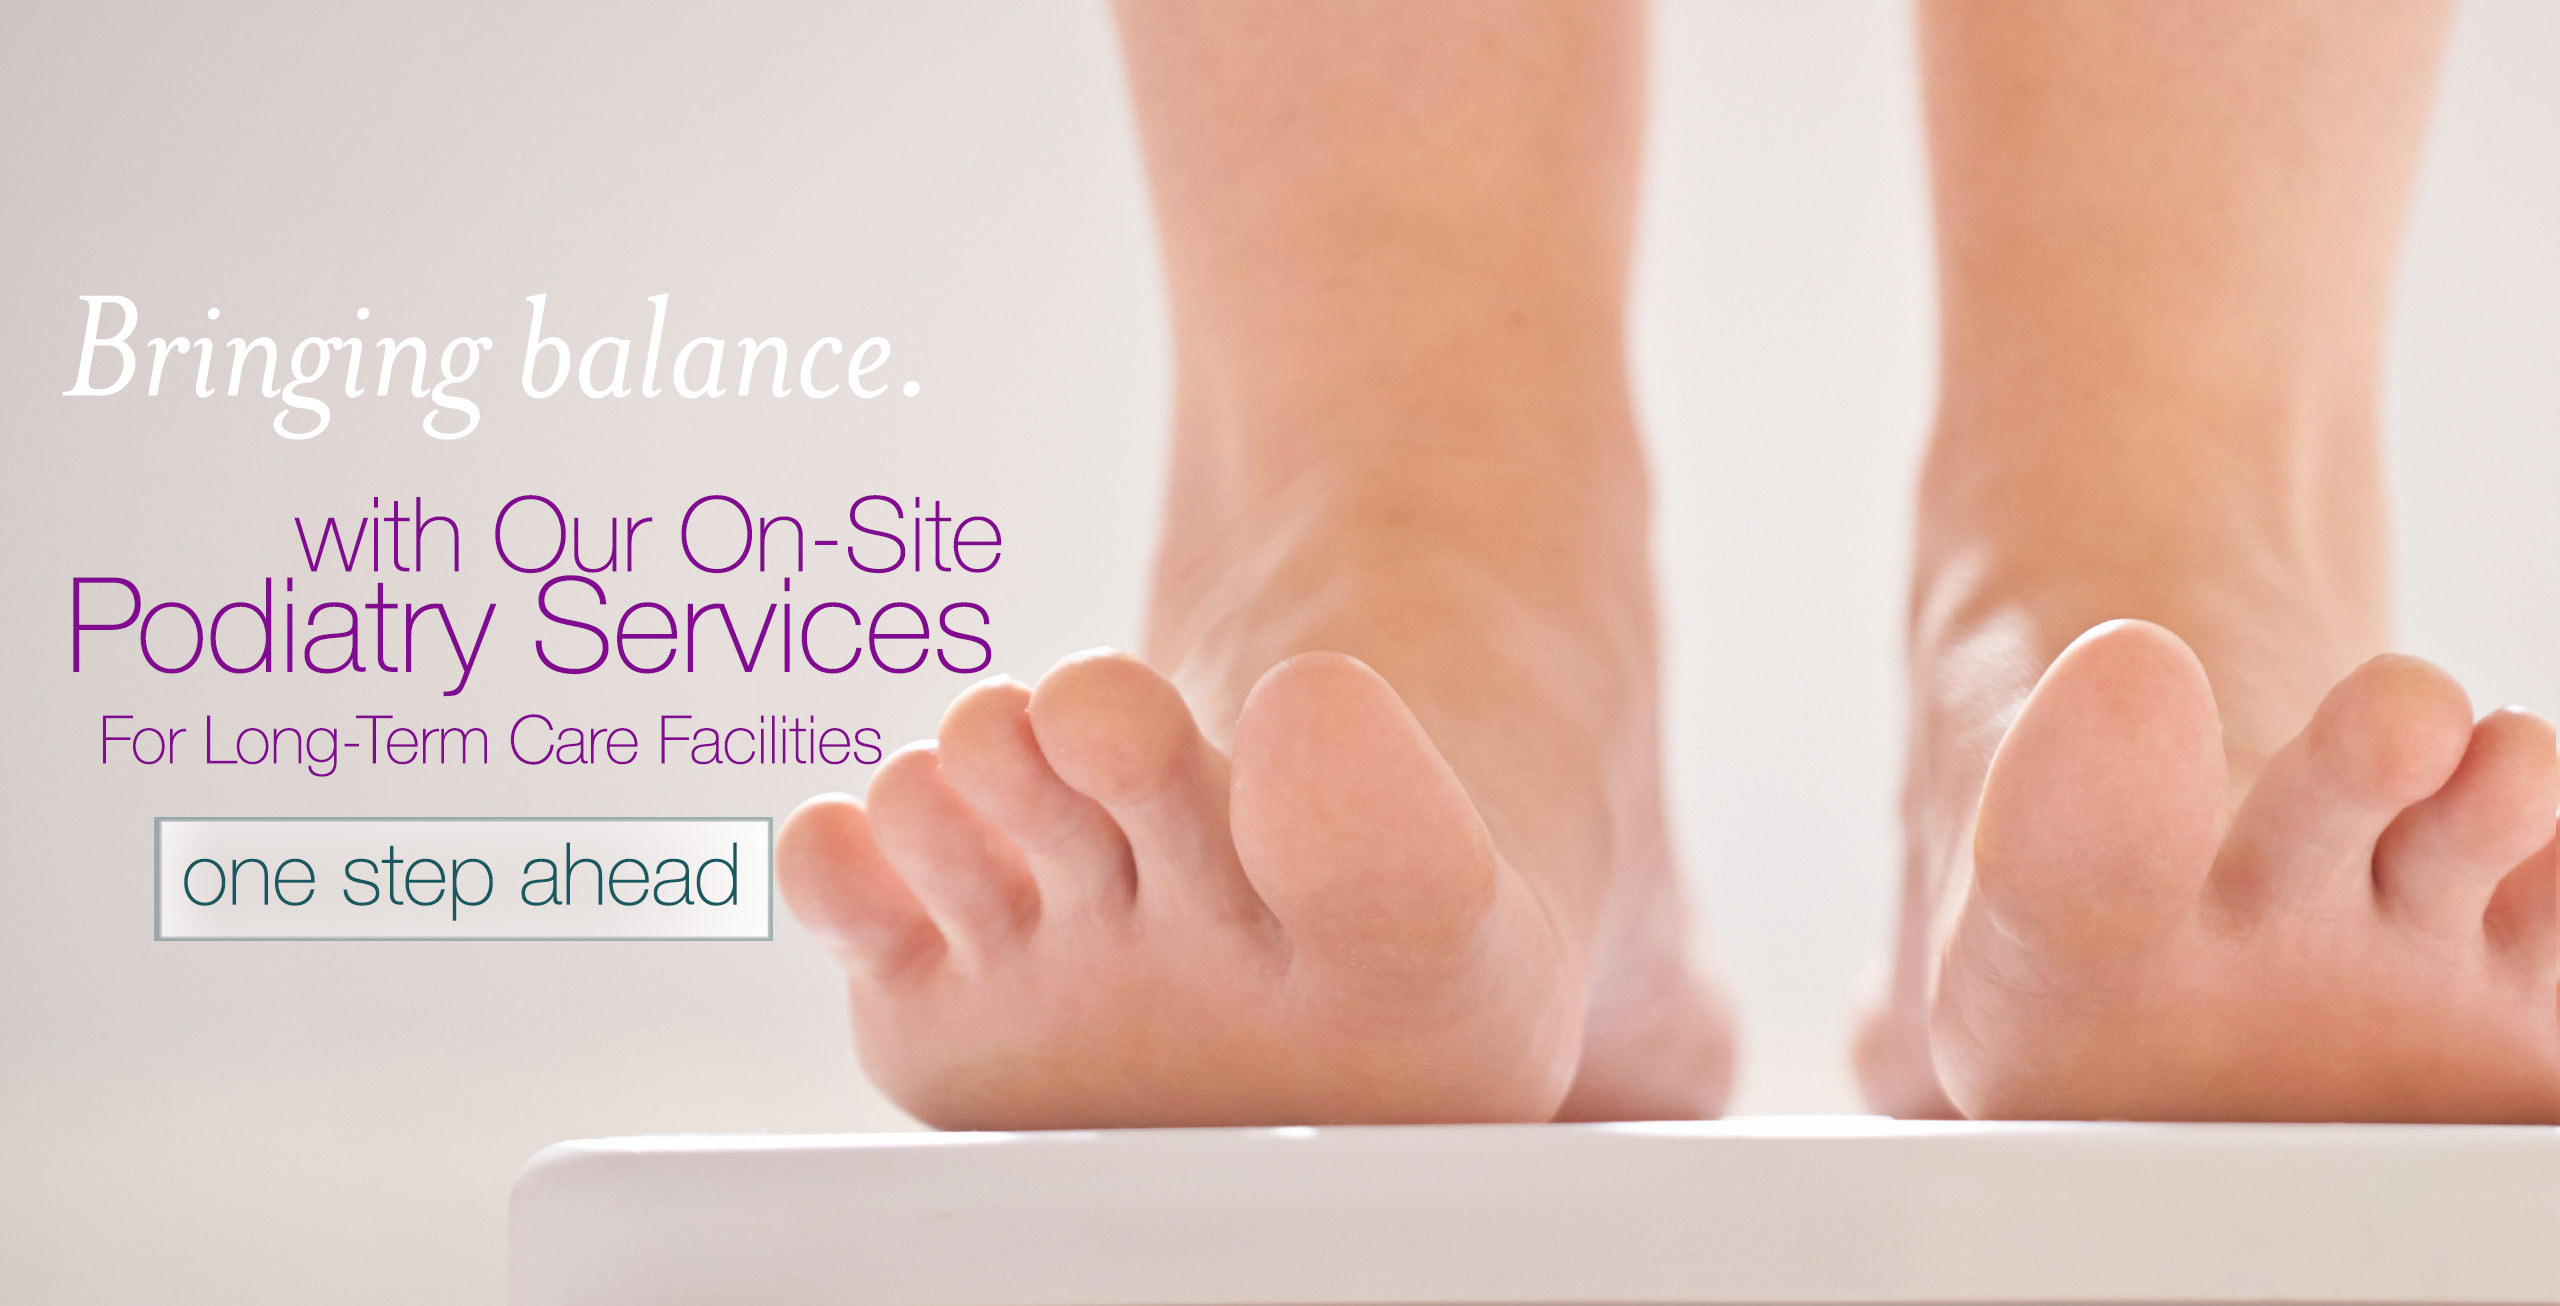 On-site Podiatry Services for Long-Term Care Facilities